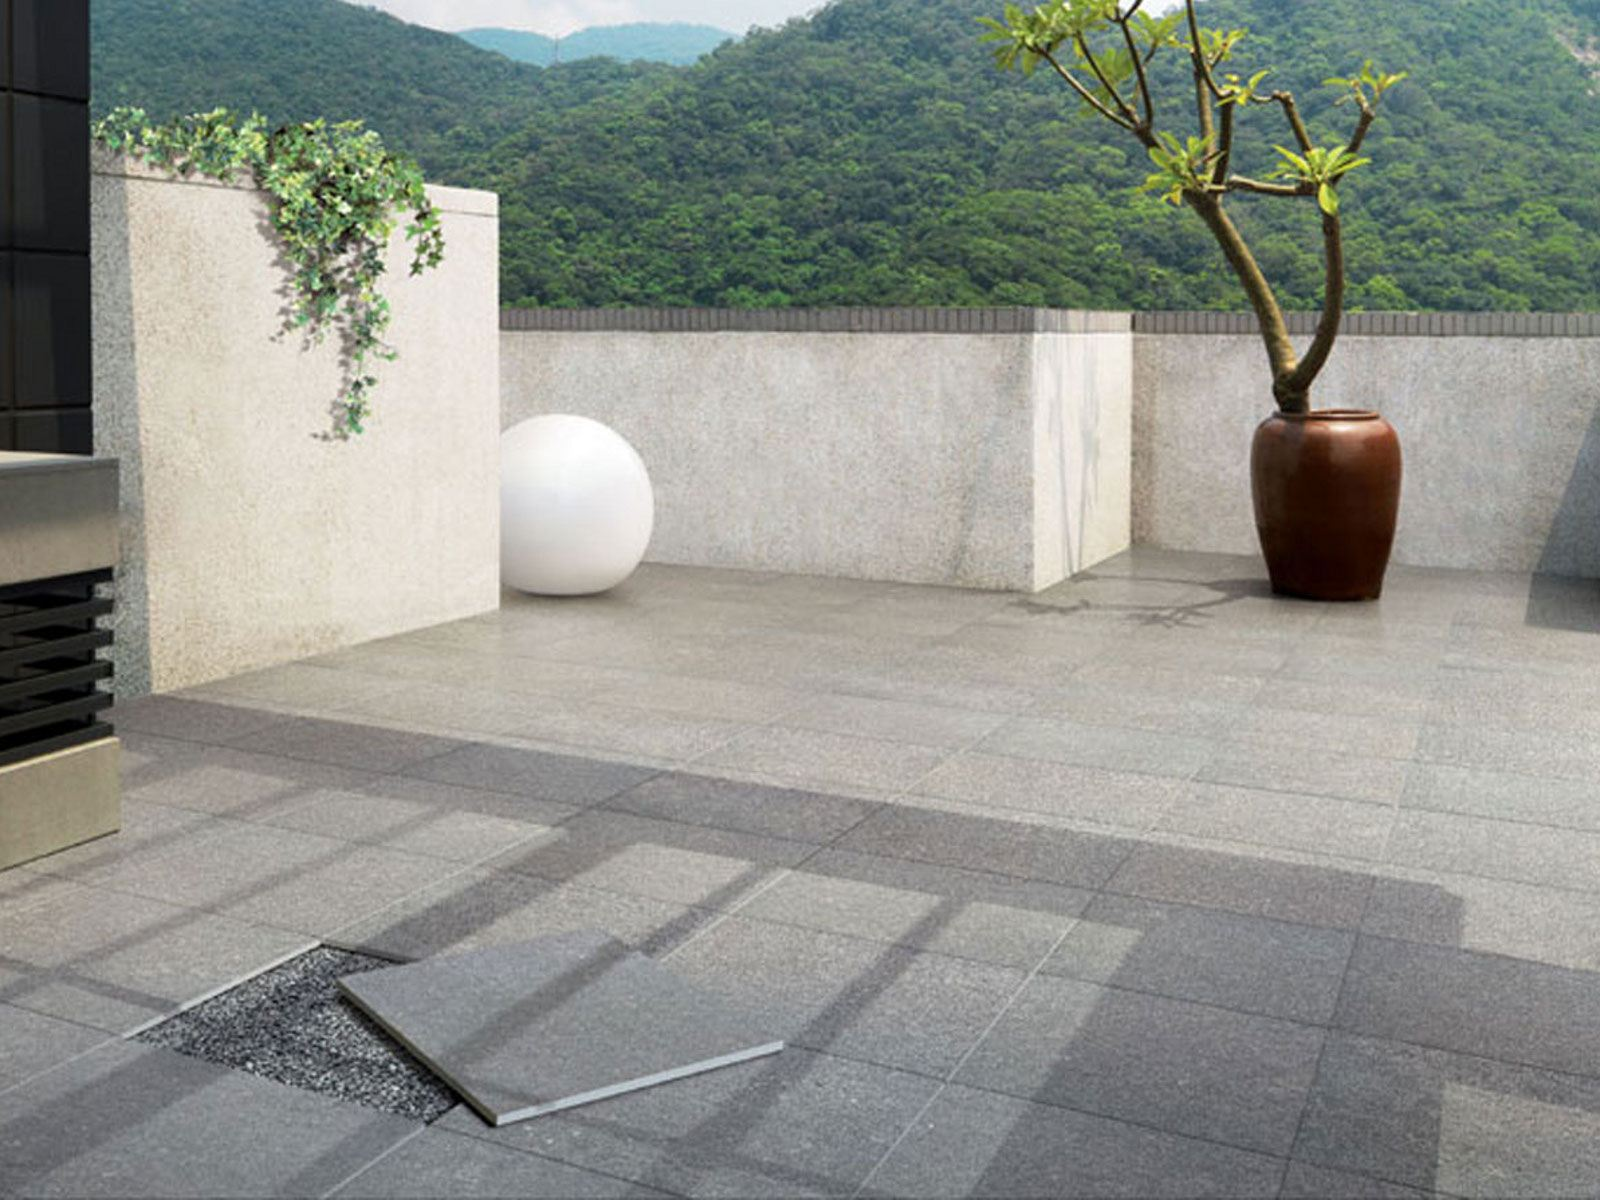 Porcelain stoneware outdoor floor tiles out 2 0 by for Carrelage exterieur gedimat